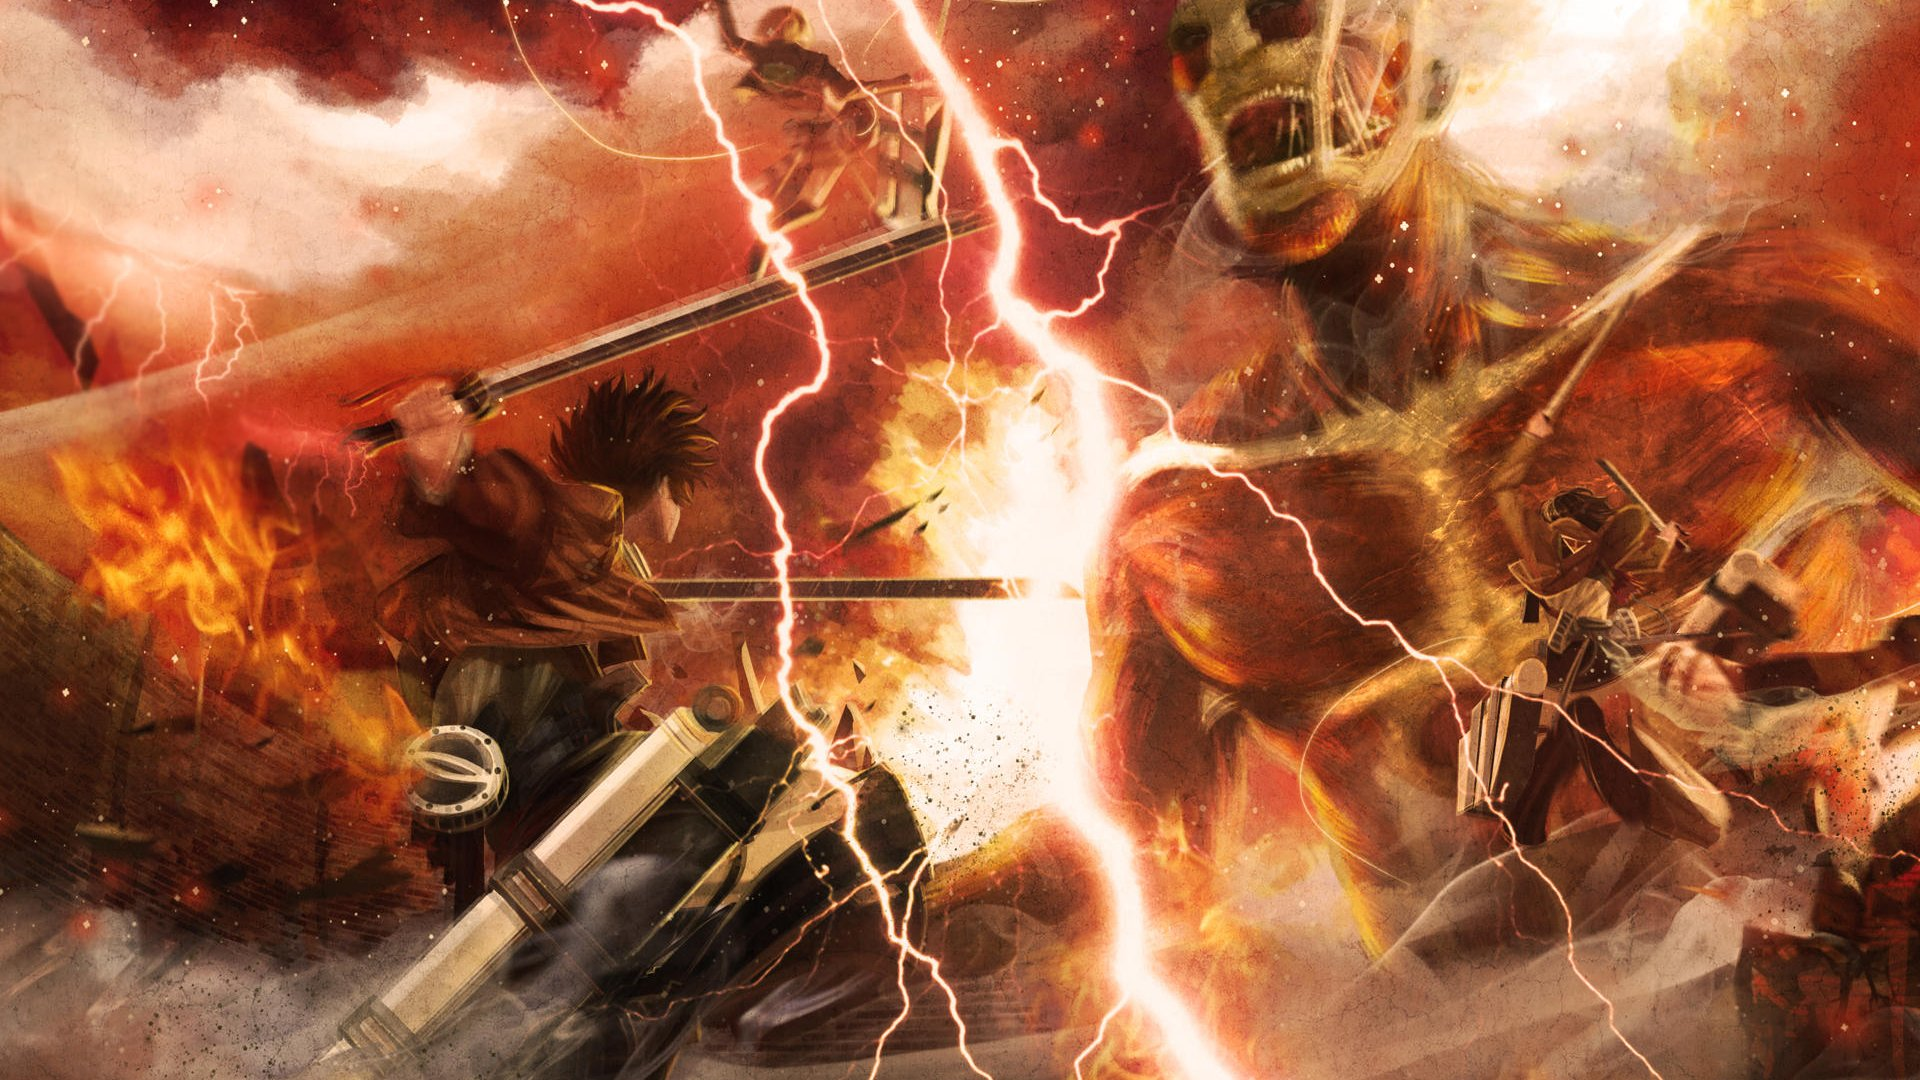 49 Attack On Titan Wallpaper Hd On Wallpapersafari